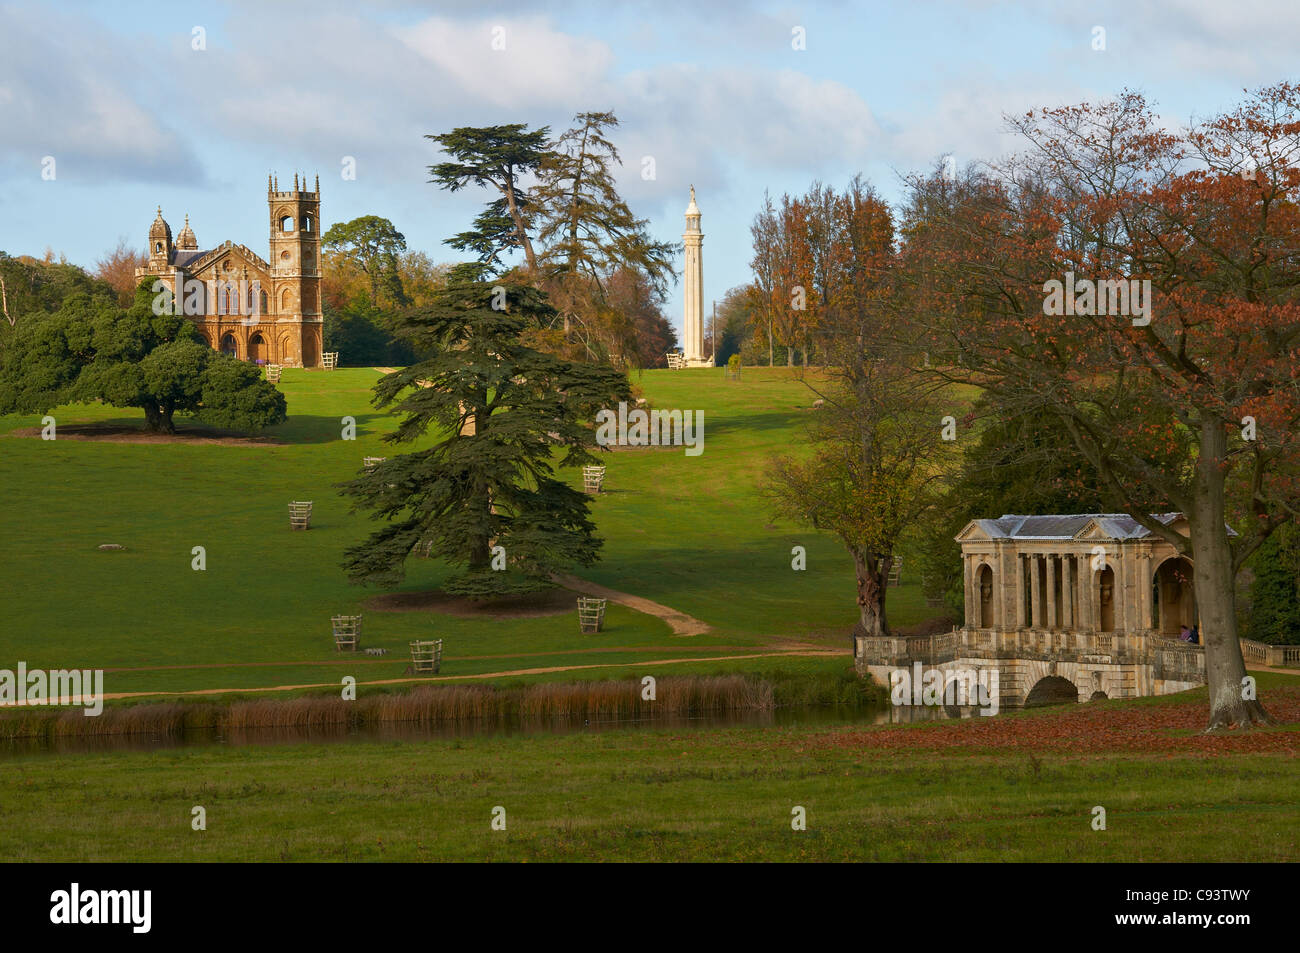 Gothic Temple, The Palladian Bridge And Monument In Beautiful Stowe Gardens  In North Buckinghamshire